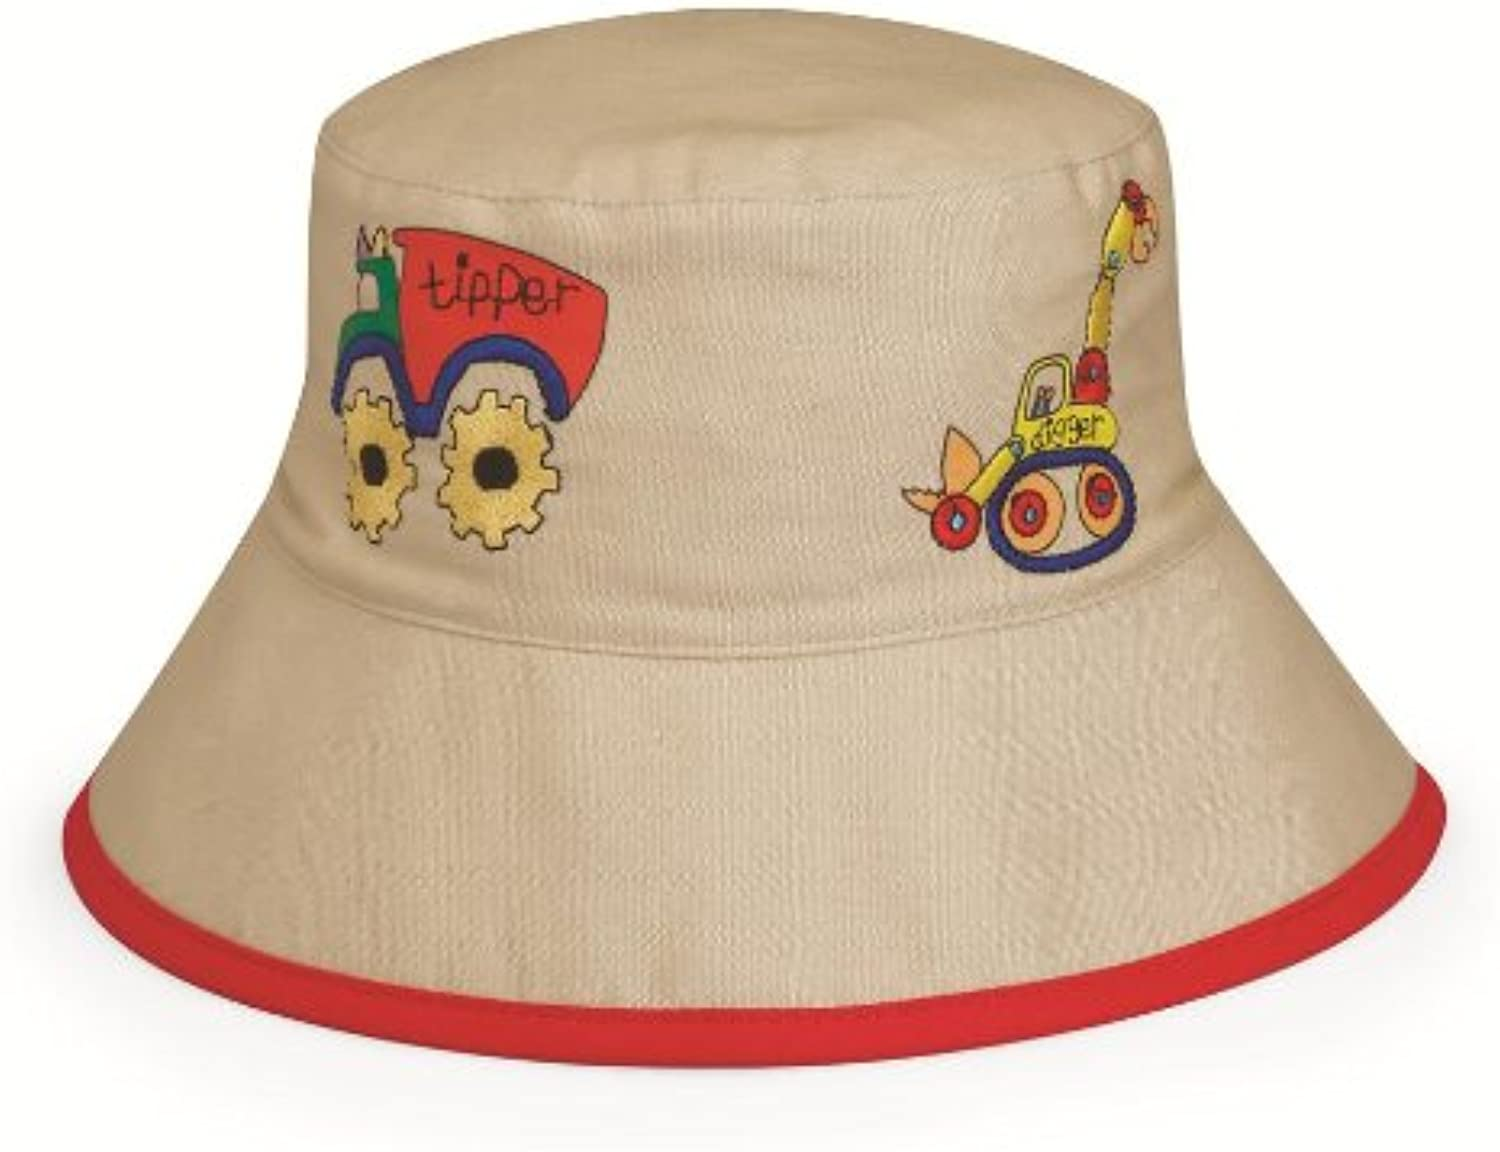 c70d239b39ad1c Wallaroo Digger UV Bucket Hat Beige, 25 Years Boy's neqrza2261 ...